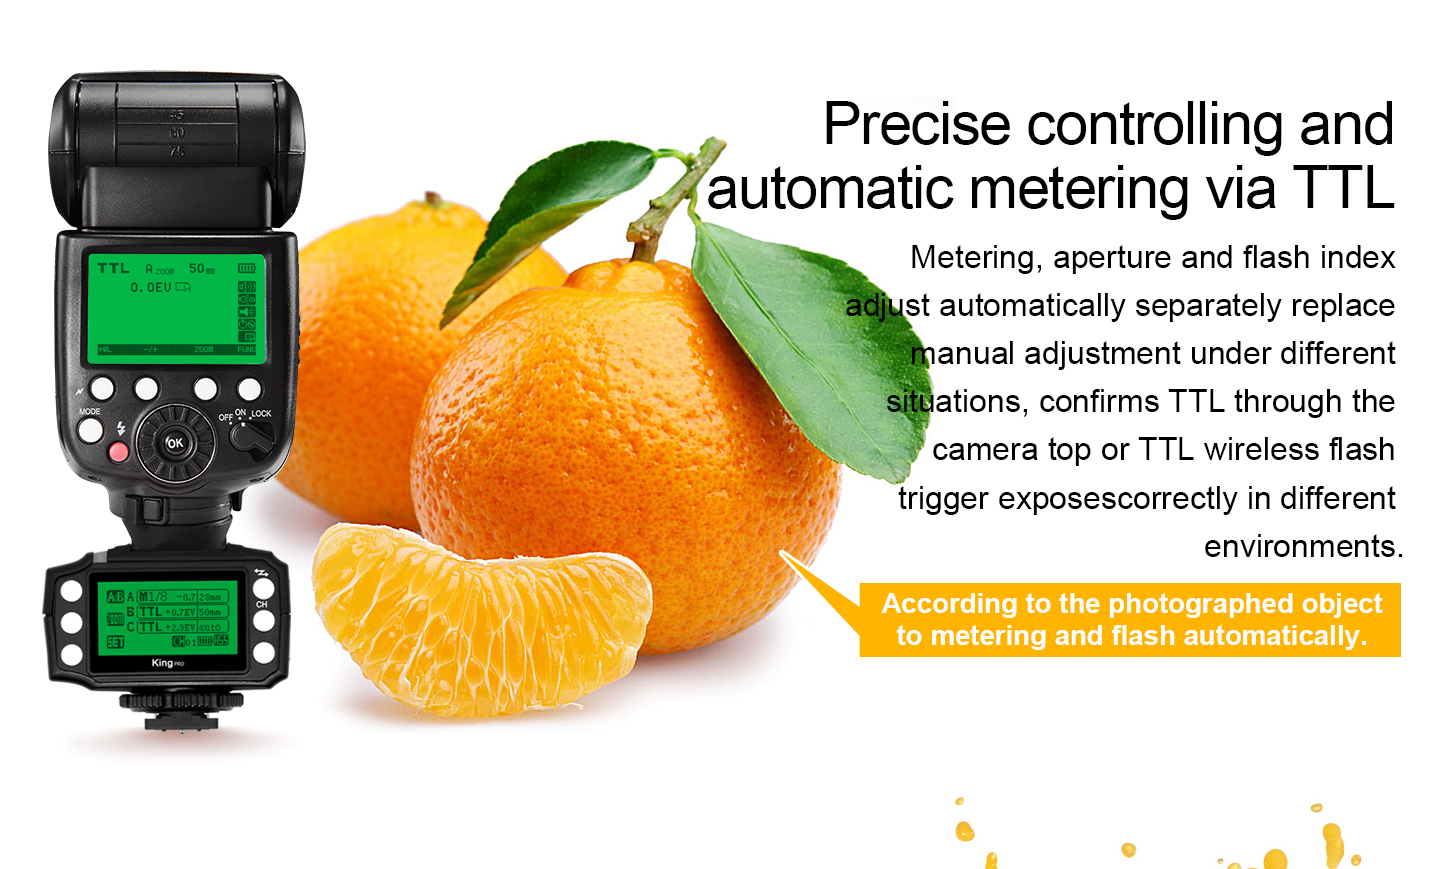 Precise controlling and automatic metering via TTL